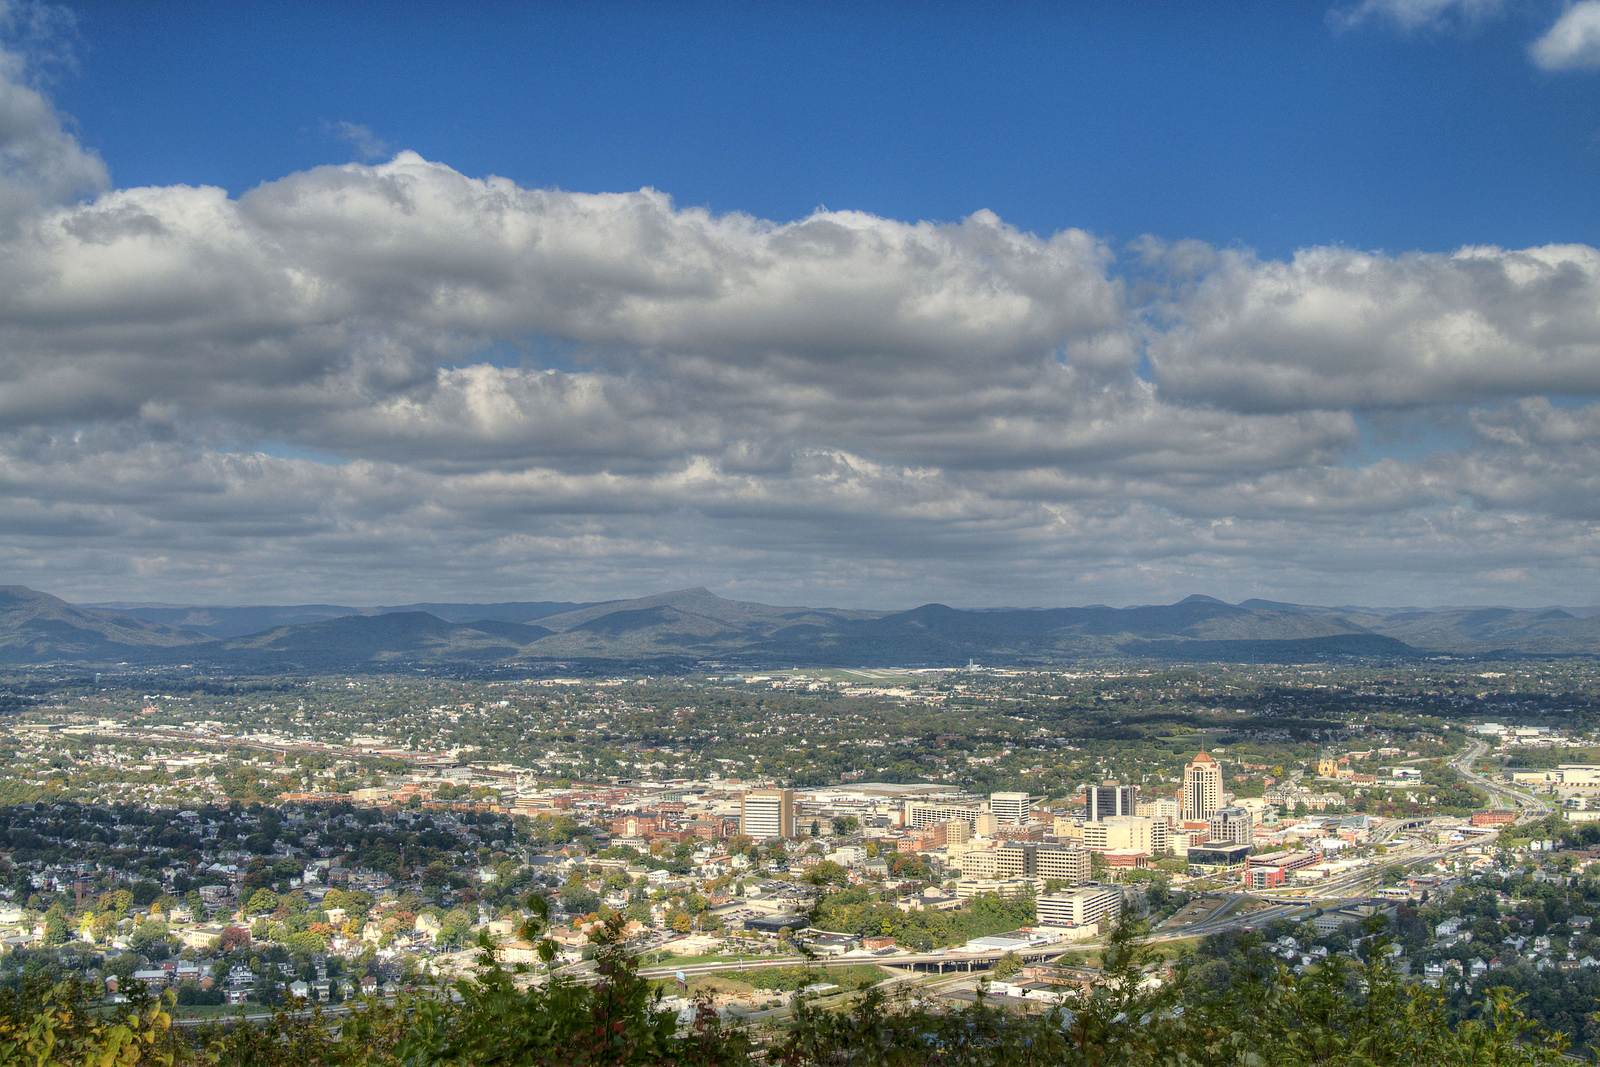 A view of the downtown area and greater Roanoke Valley area from the Roanoke Star Overlook at Mill Mountain Park in Roanoke, VA on Friday, October 25, 2013. Copyright 2013 Jason Barnette